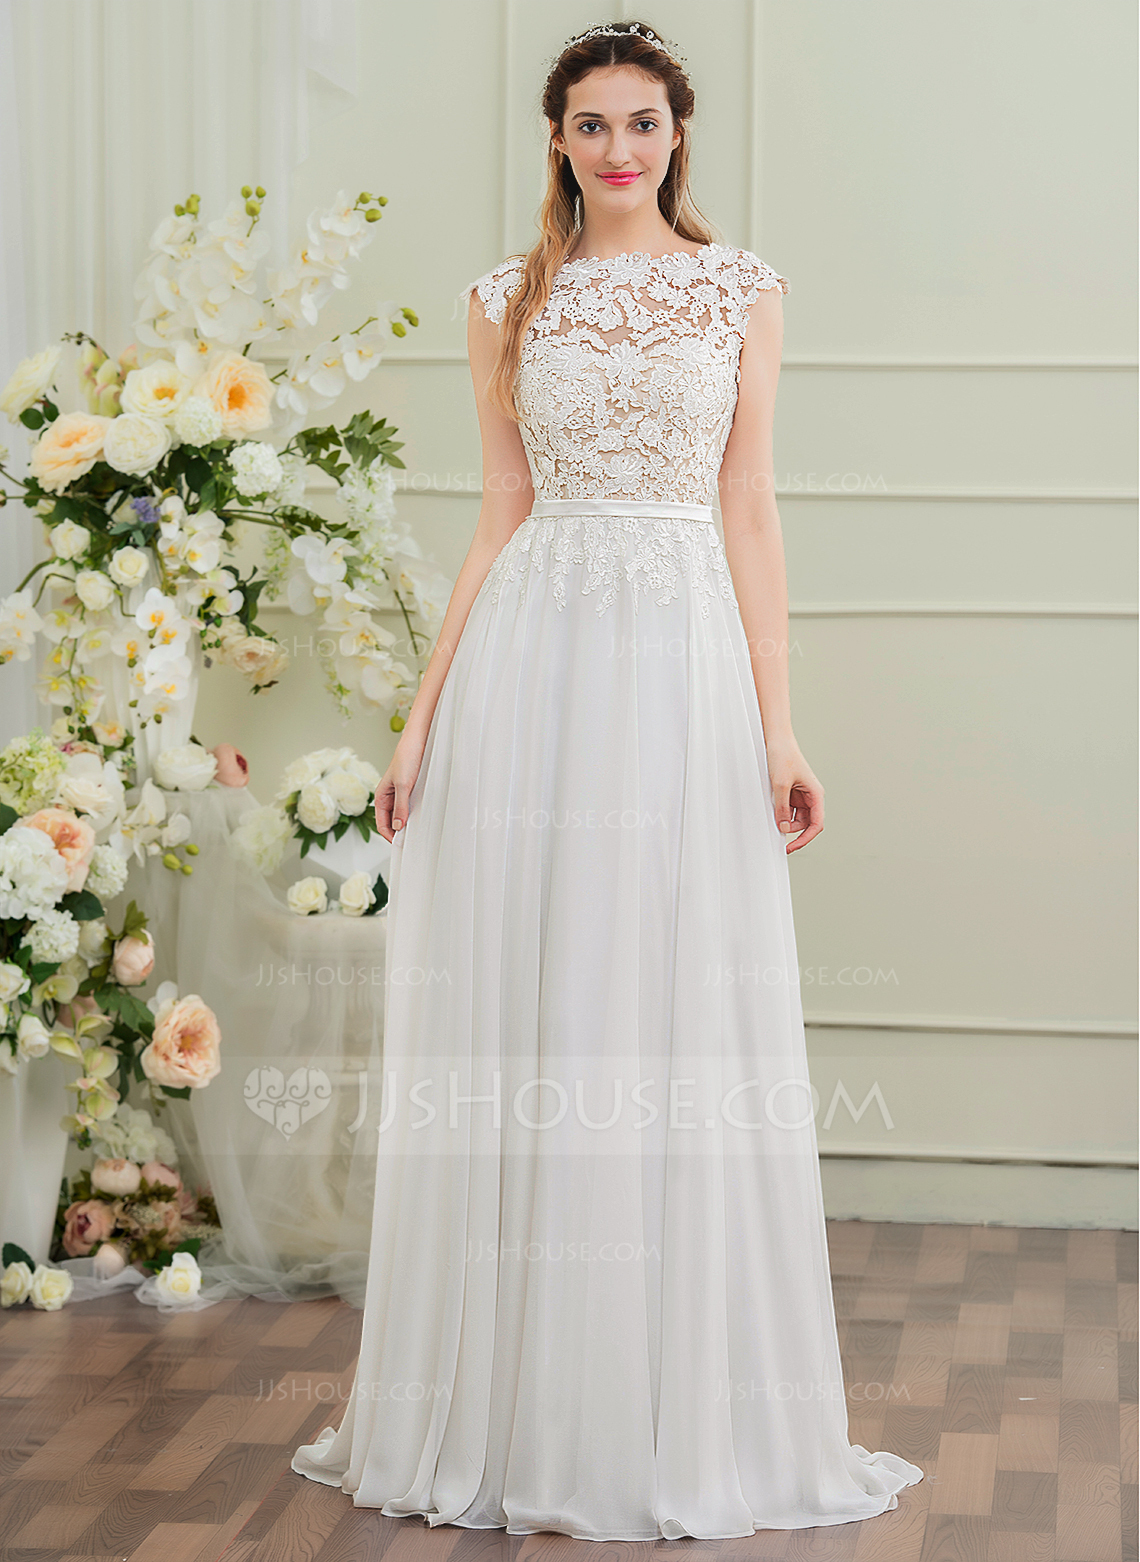 mexican style wedding dresses photo - 1